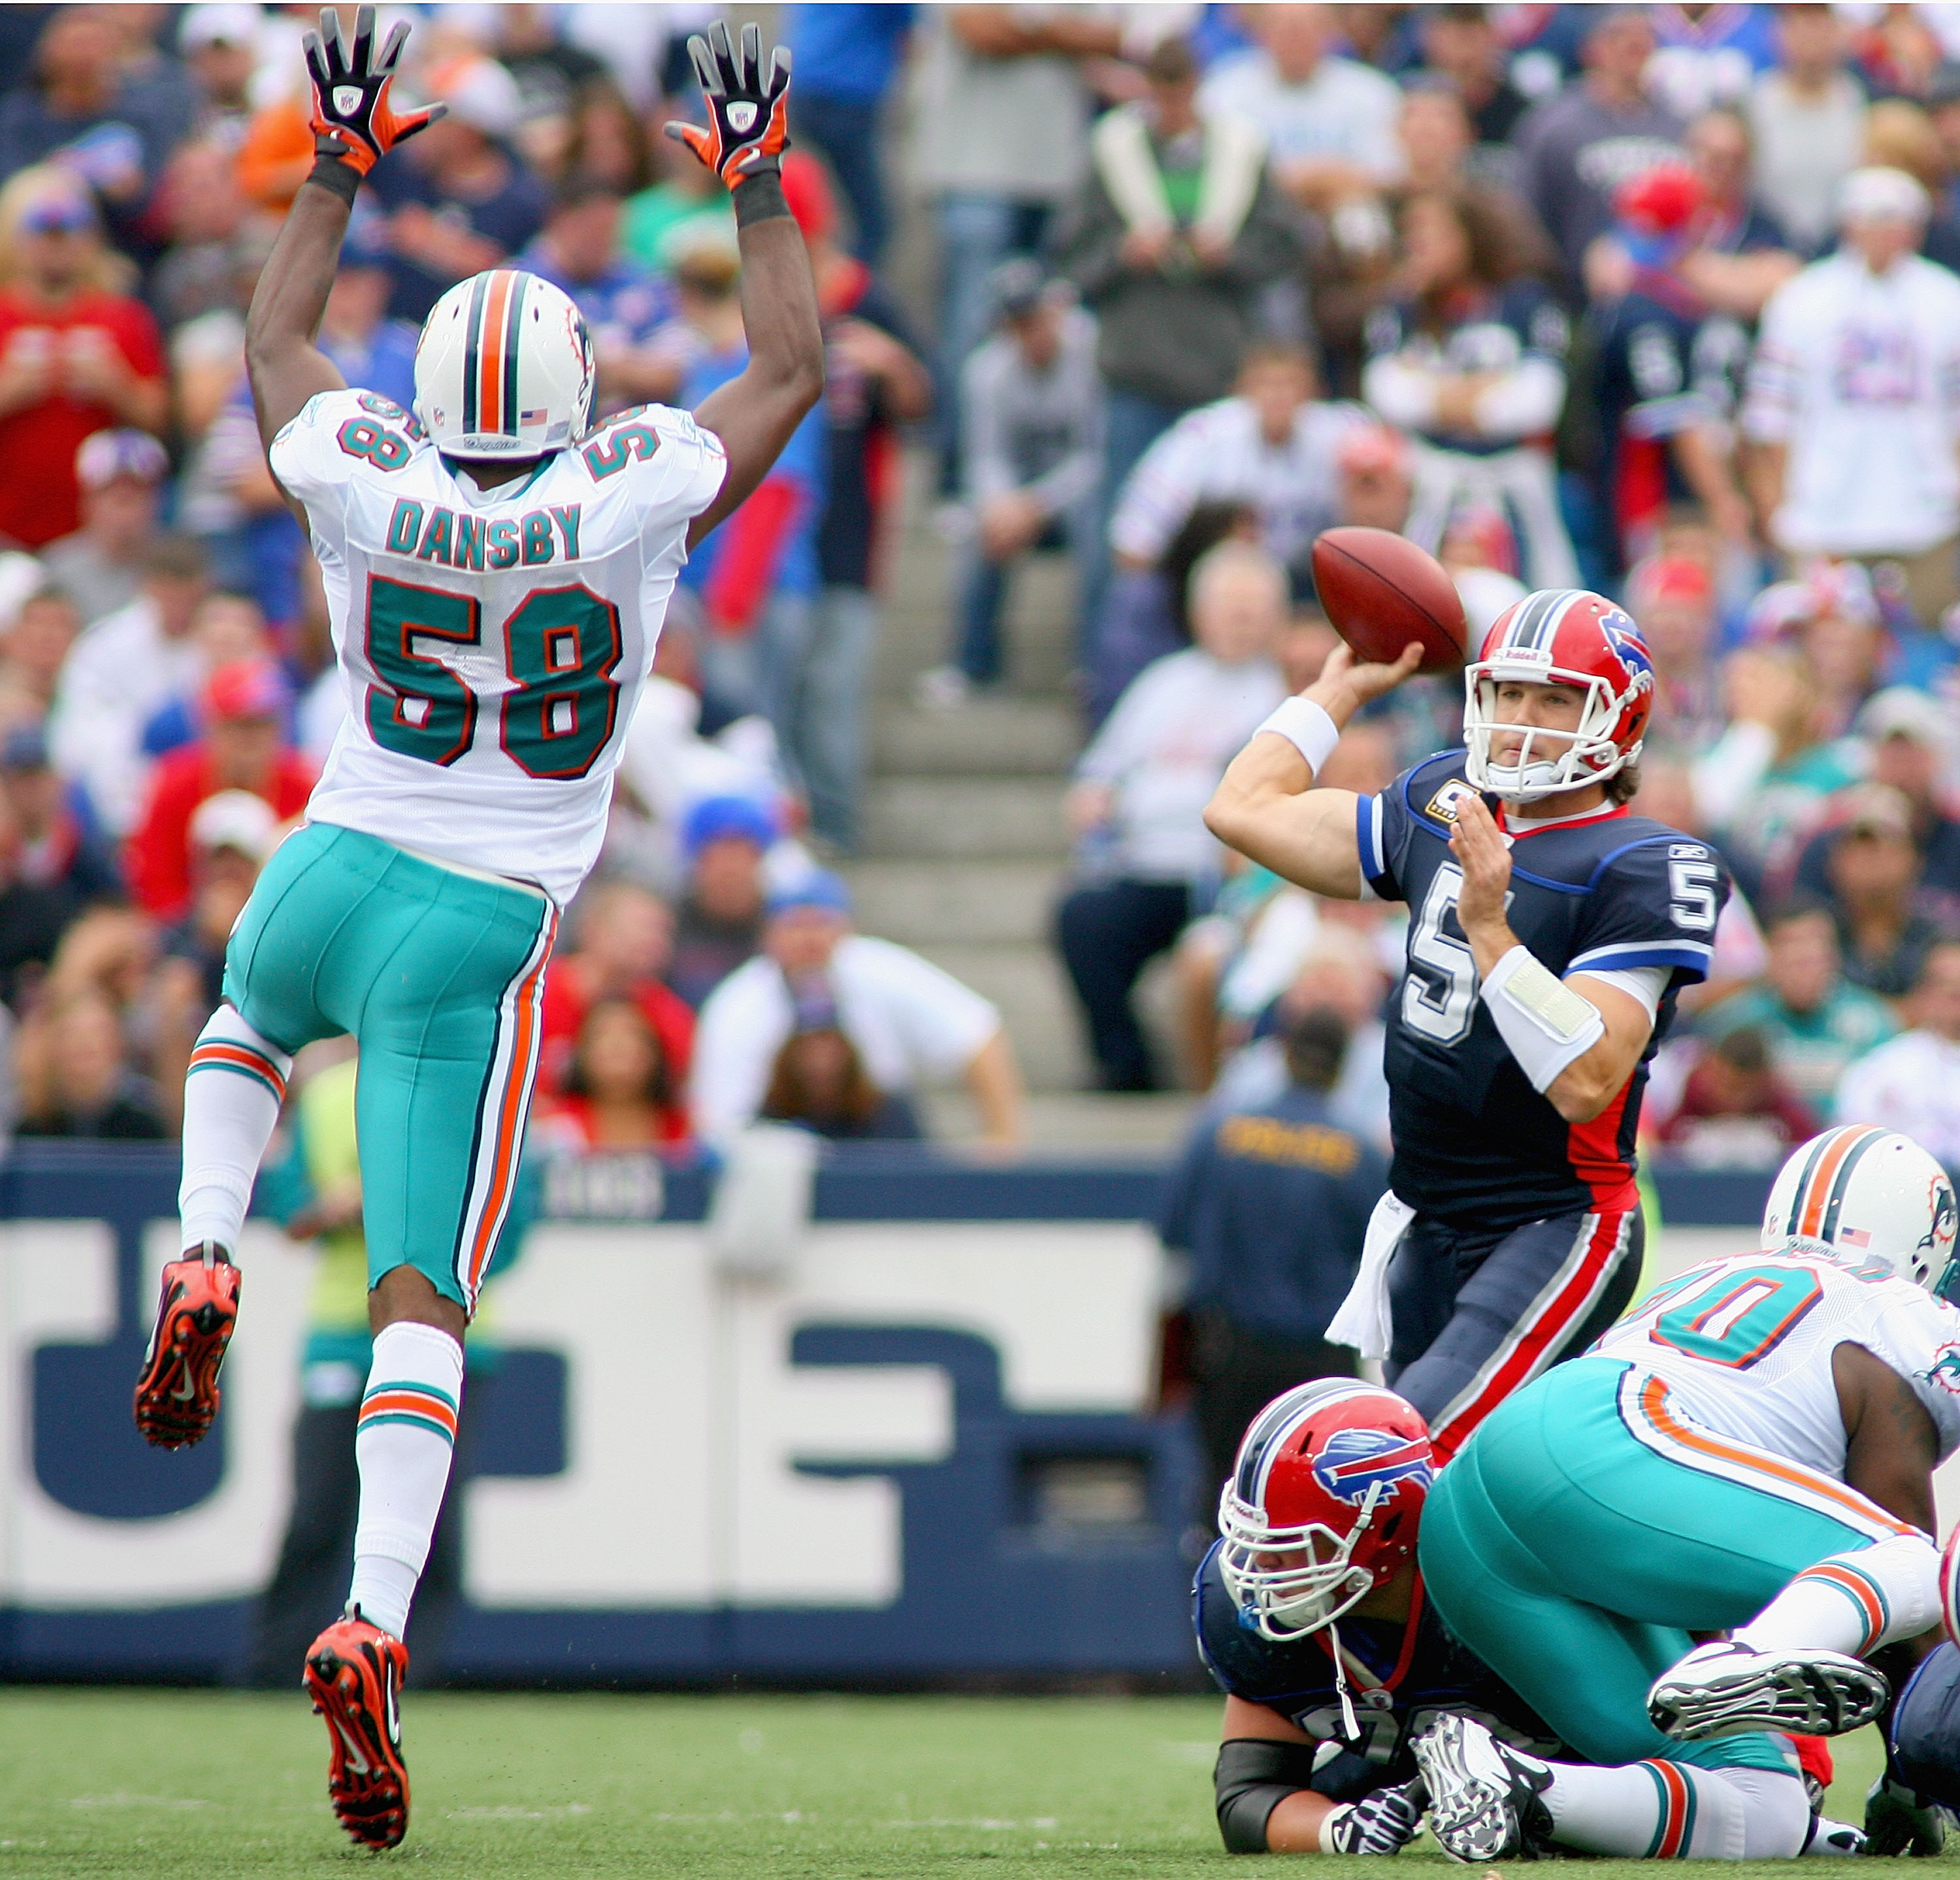 ORCHARD PARK, NY - SEPTEMBER 12: Trent Edwards #5 of the Buffalo Bills throws a pass under pressure from Karlos Dansby #58 of the Miami Dolphins during the NFL season opener at Ralph Wilson Stadium on September 12, 2010 in Orchard Park, New York. Miami wo